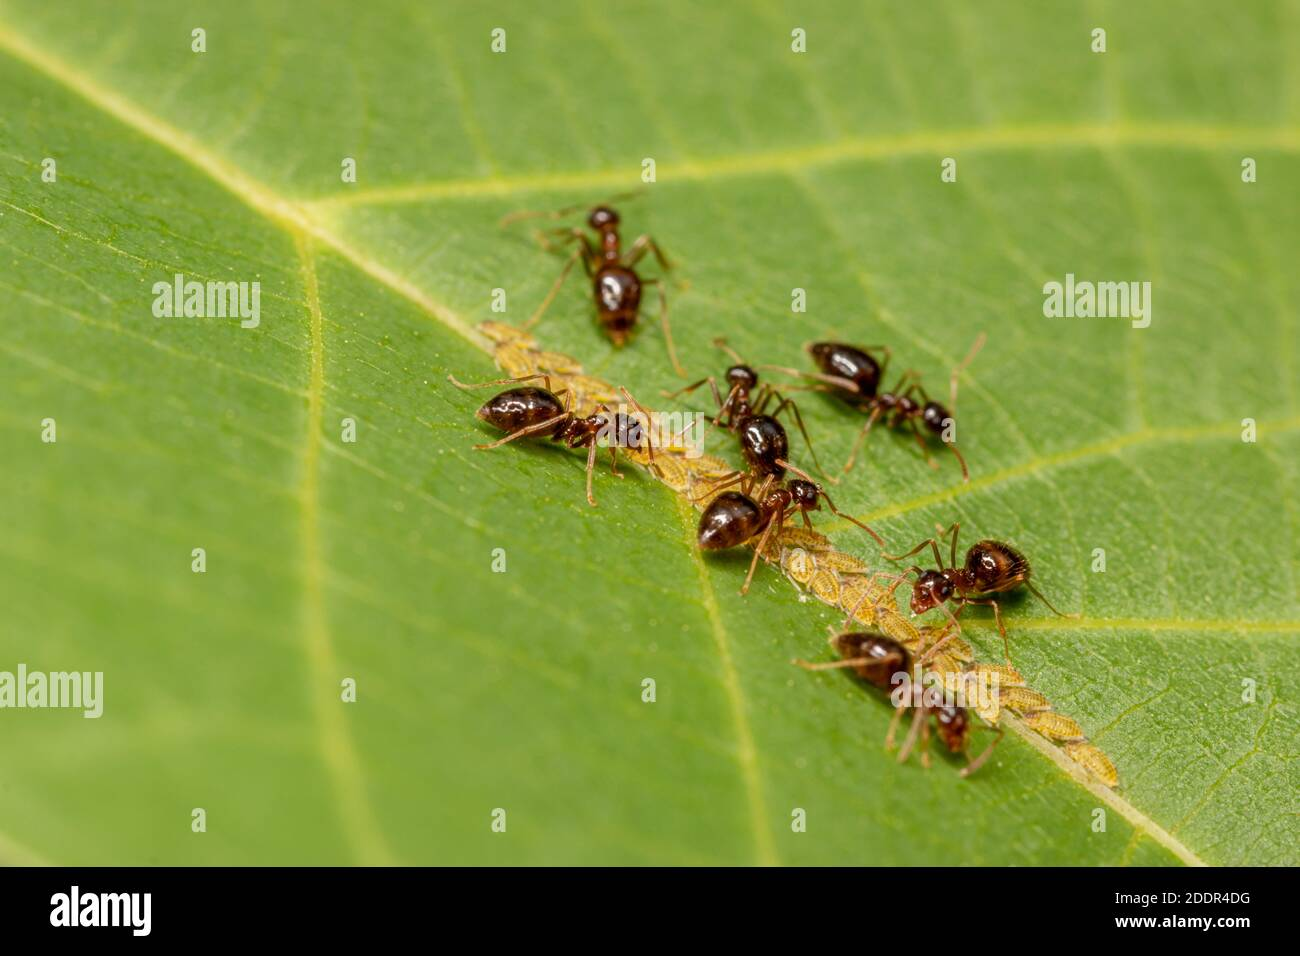 Brown Ants Eating Aphids, Larvae on a Green Leaf on a Tree. Stock Photo